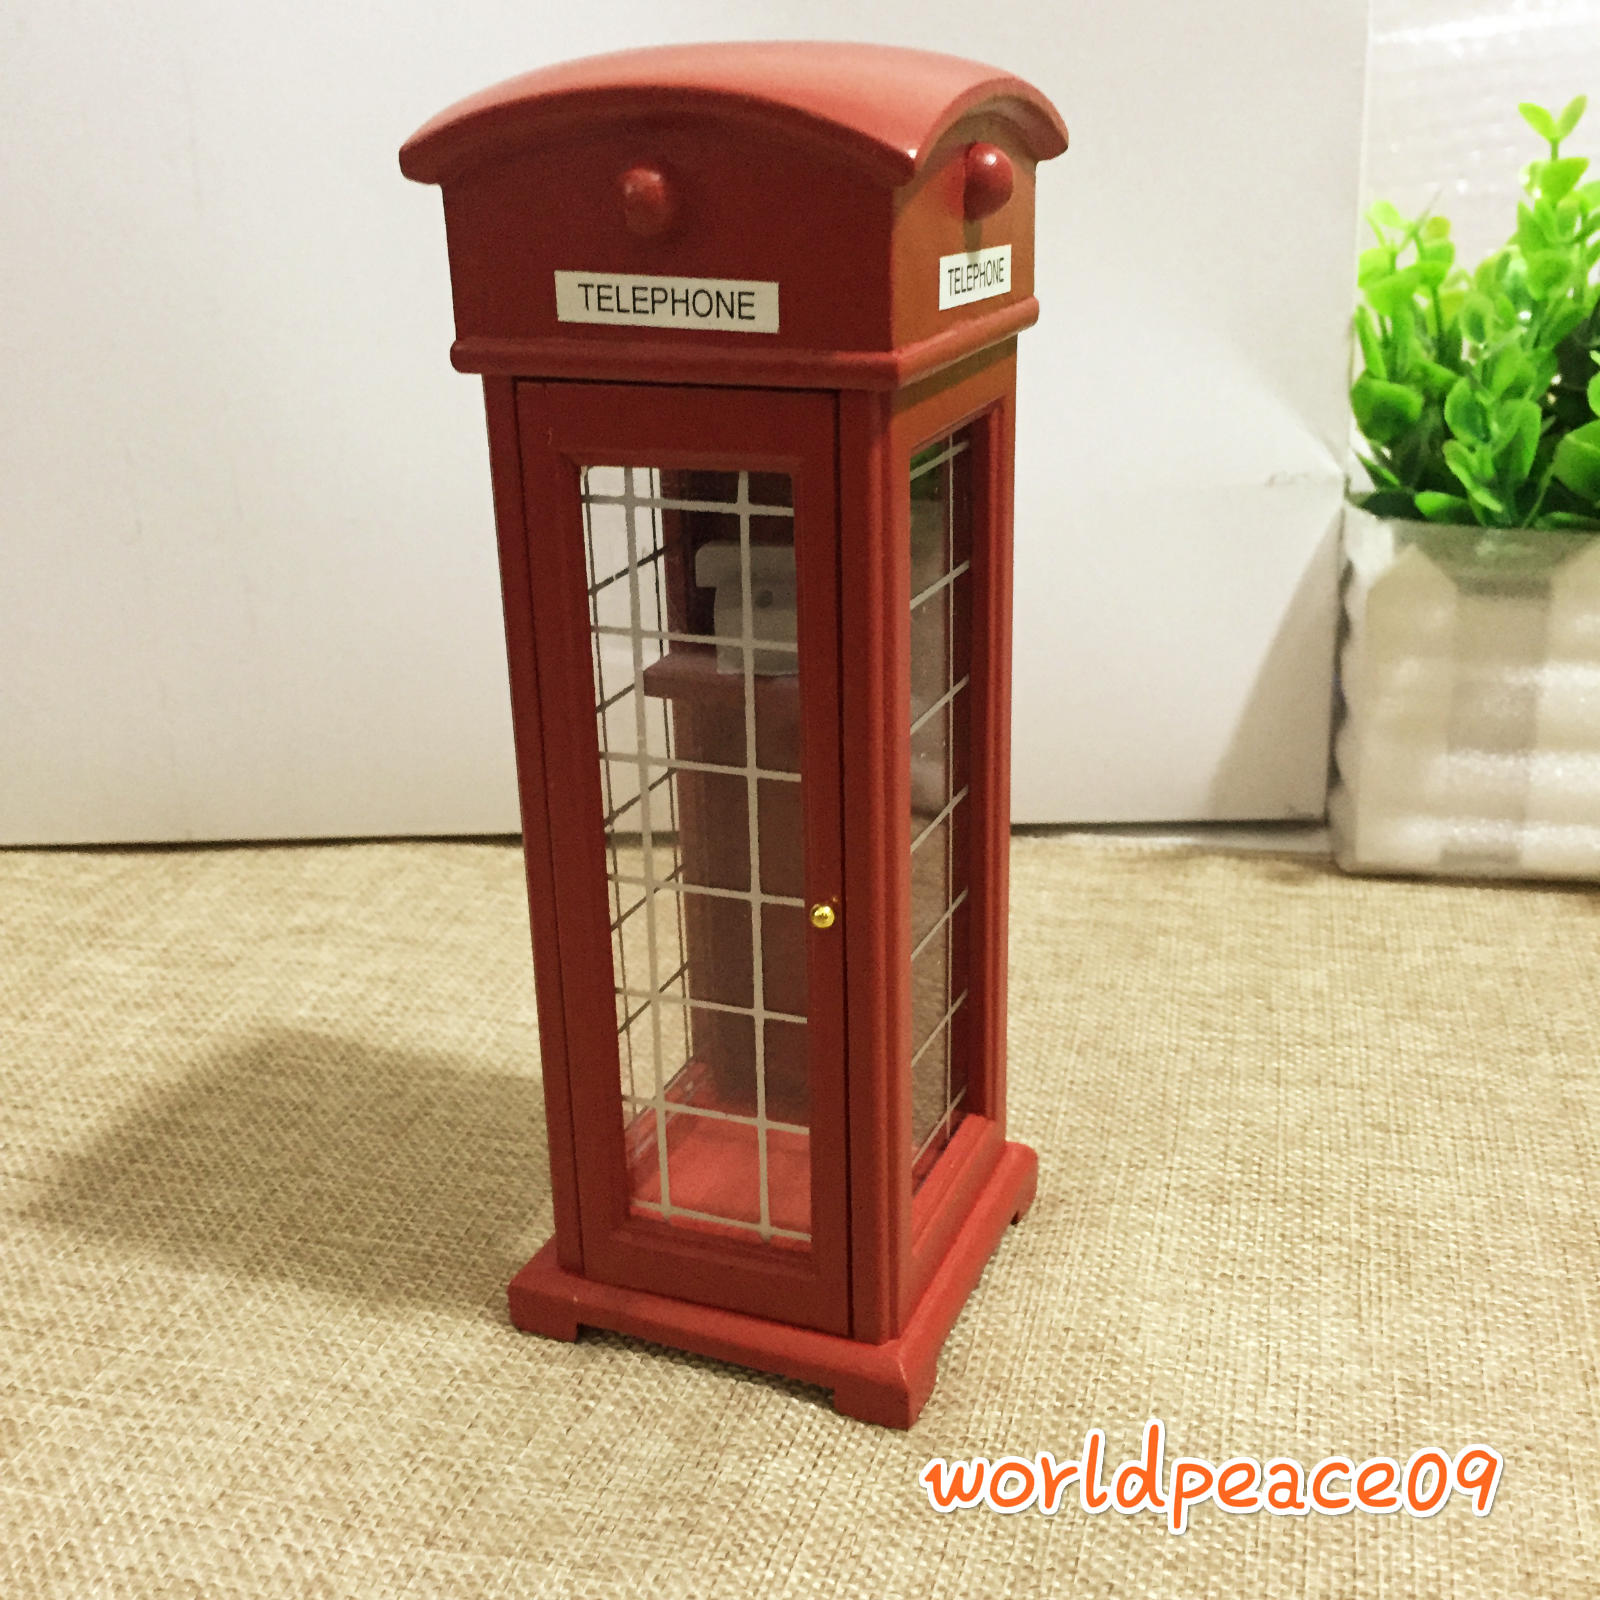 Details about Dollhouse Red Old-Fashioned Public Telephone Booth 1:12  Miniature Decor